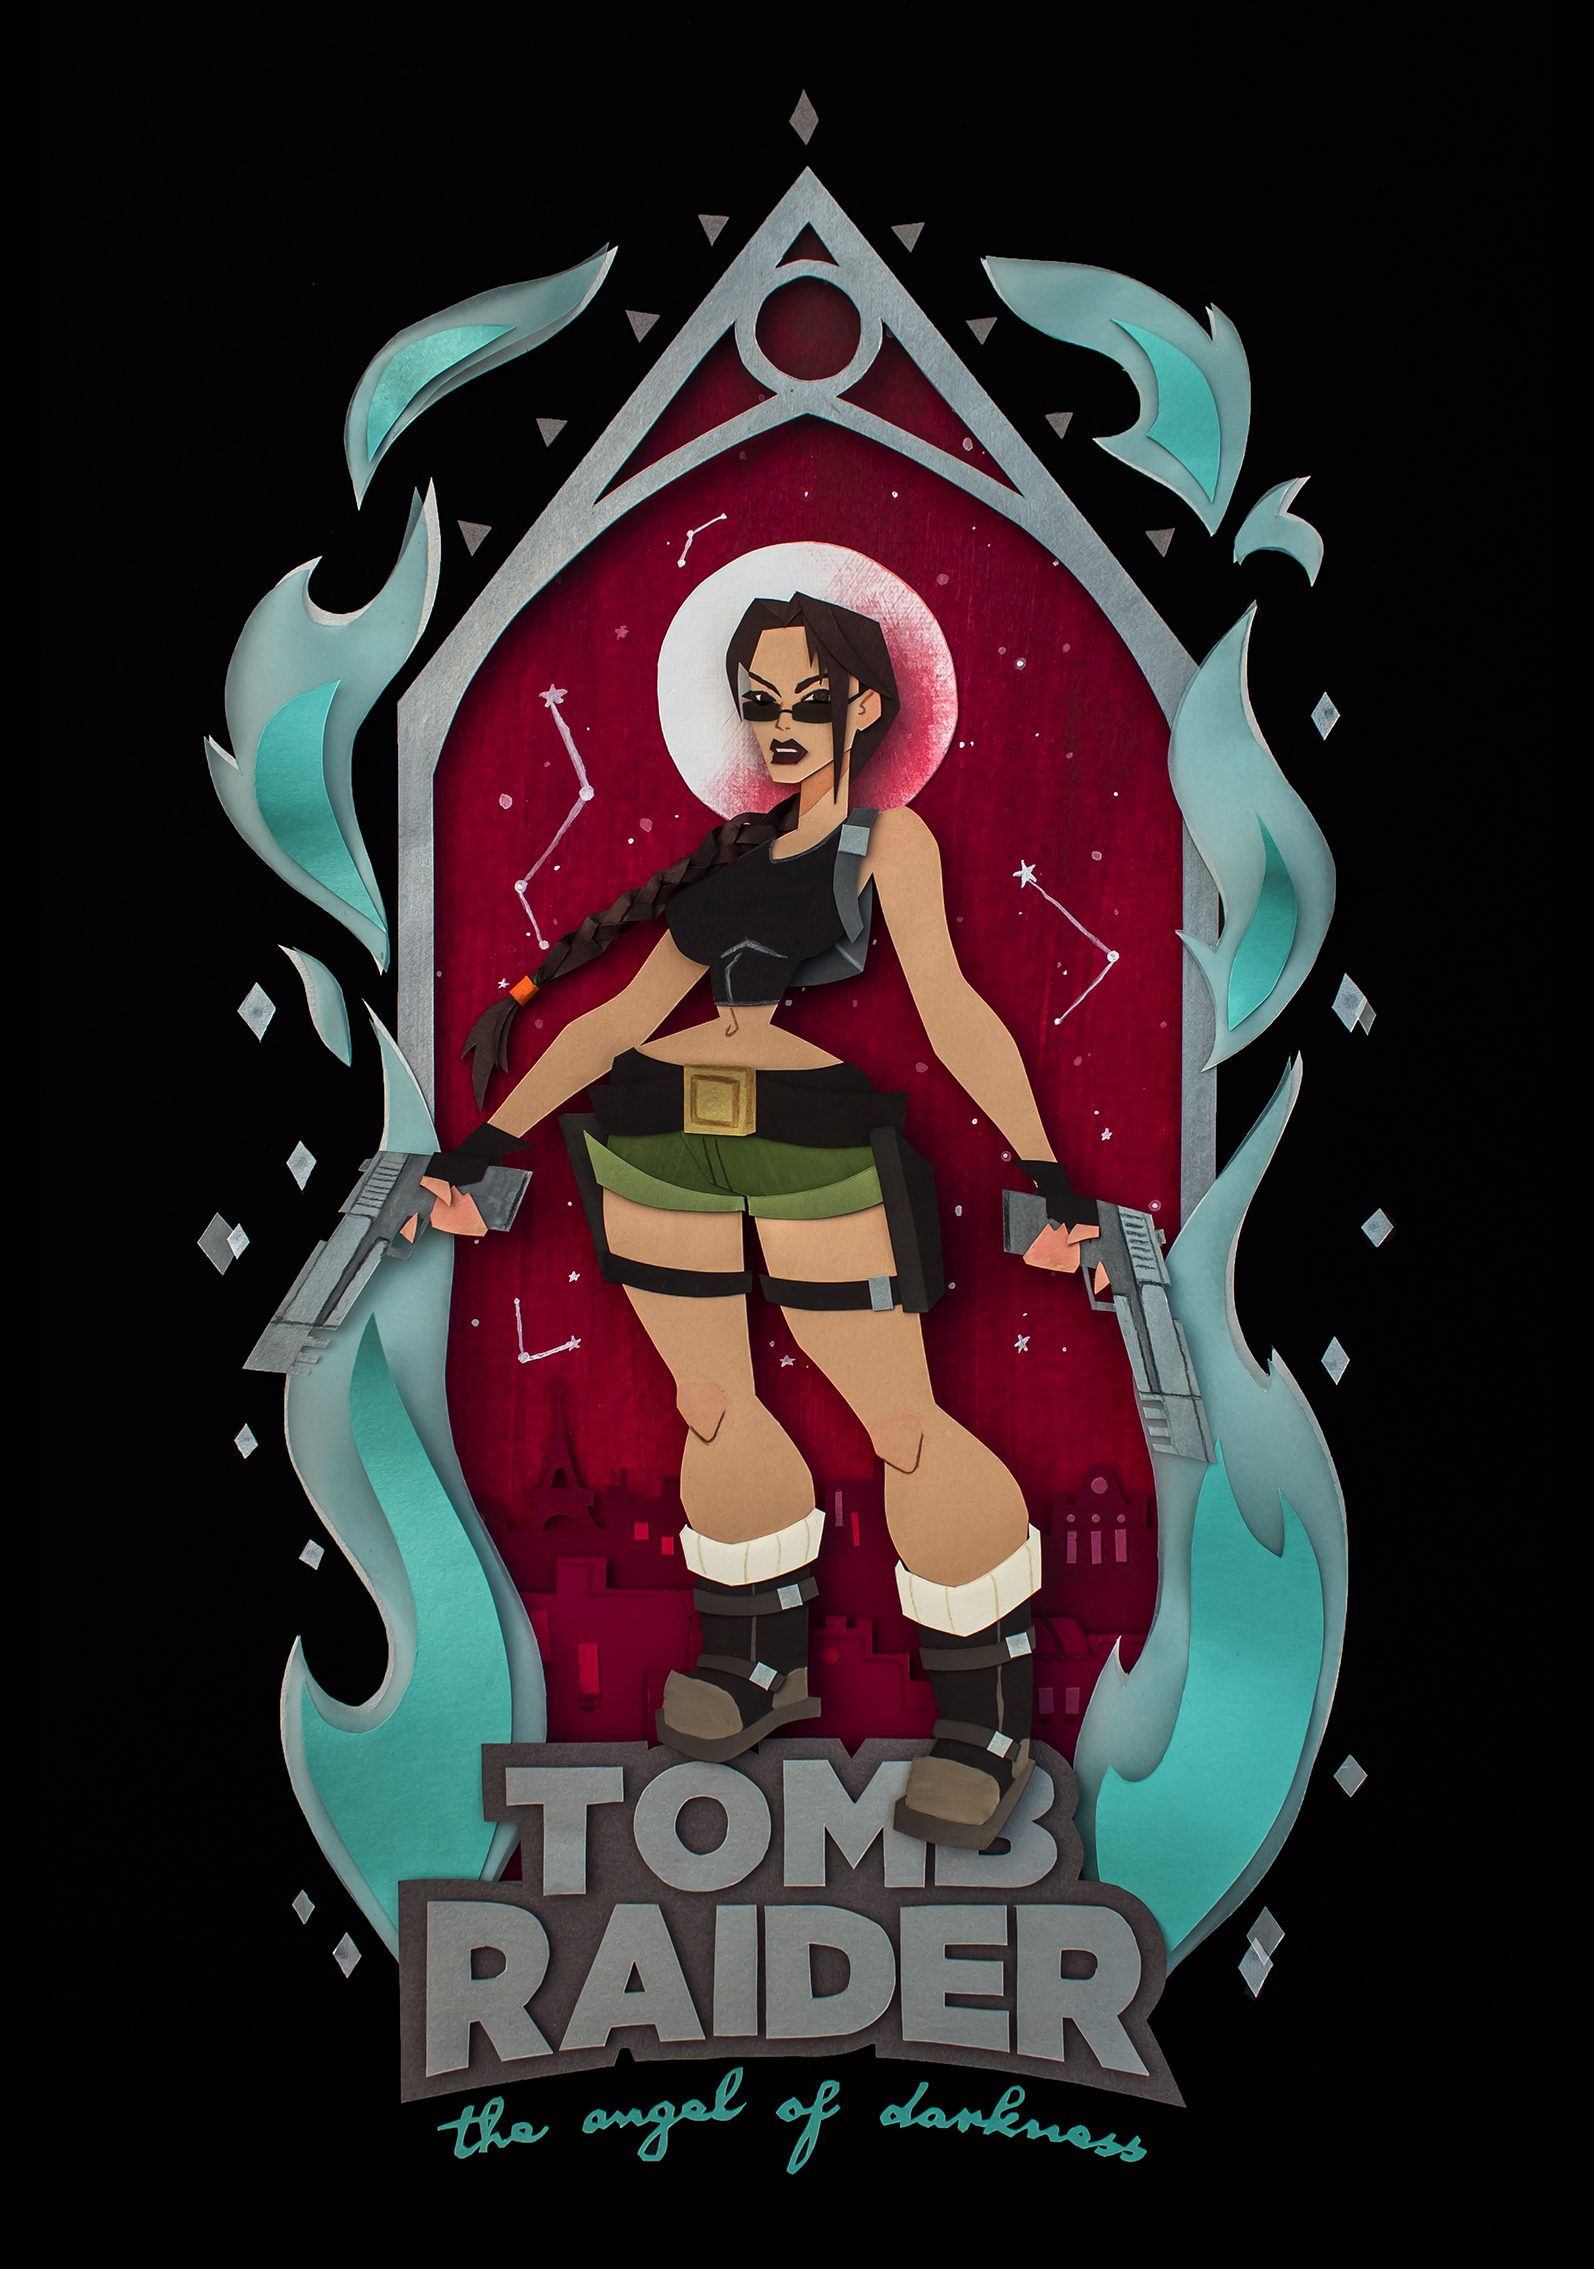 """An image of Lara croft standing under a gothic arch. Behind the arch is a vibrant red background featuring Paris' skyline. A brilliant white moon floats under the very top of the arch, just behind Lara's head, which gives her a divine-looking halo. Around the arch is blue flame reminiscent of the original Angel of Darkness box art. Lara is wearing a black crop top and green shorts, and stands on top of a logo that reads """"Tomb Raider: The Angel of Darkness. The entire piece of art is made of cut pieces of paper."""